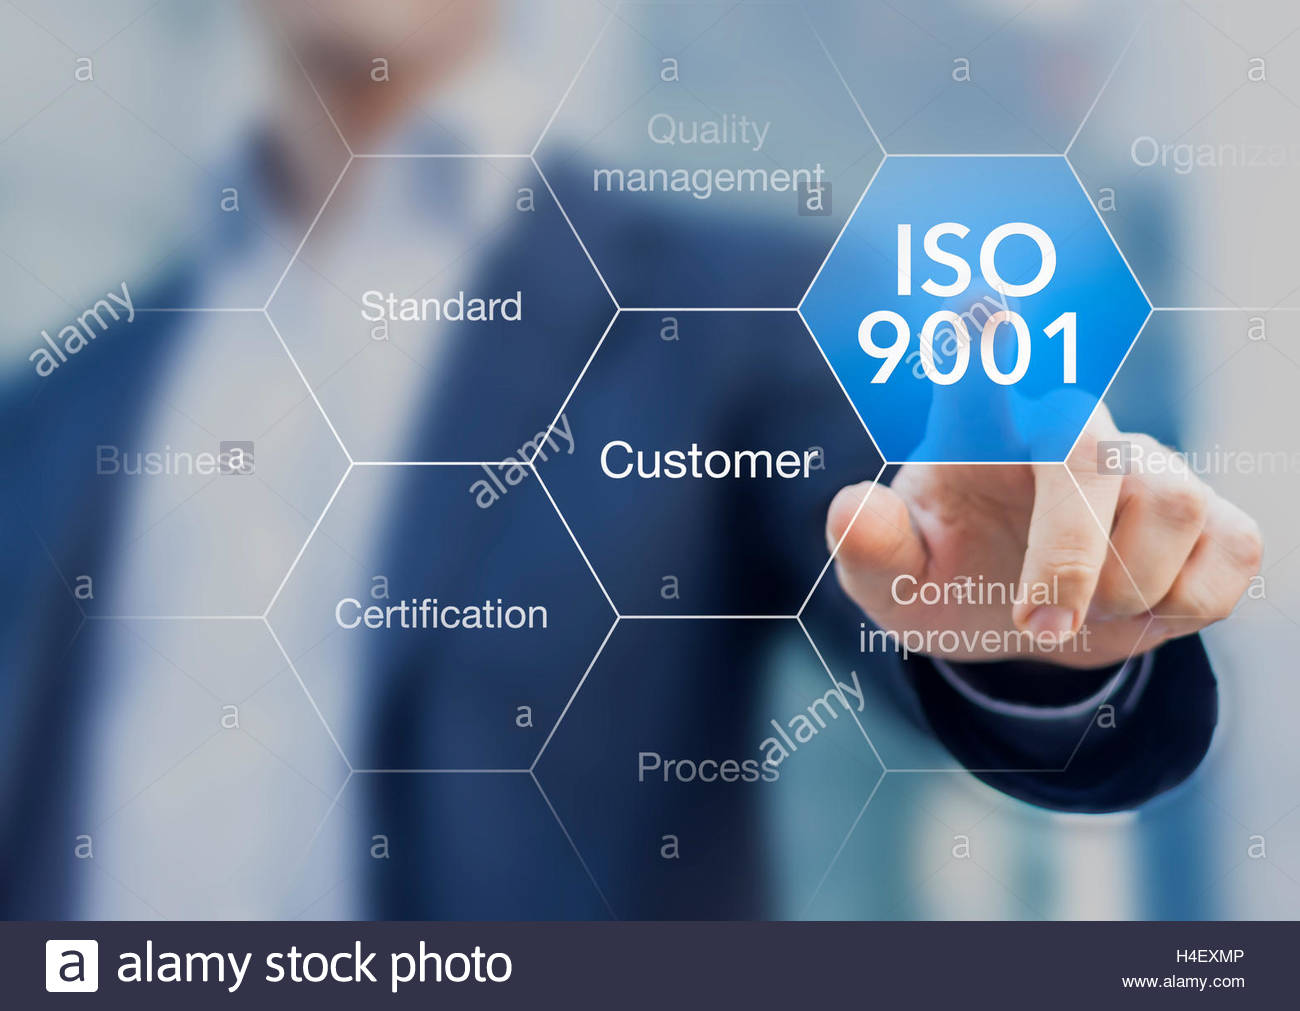 ISO 9001 standard for quality management of organizations with an 1300x1011